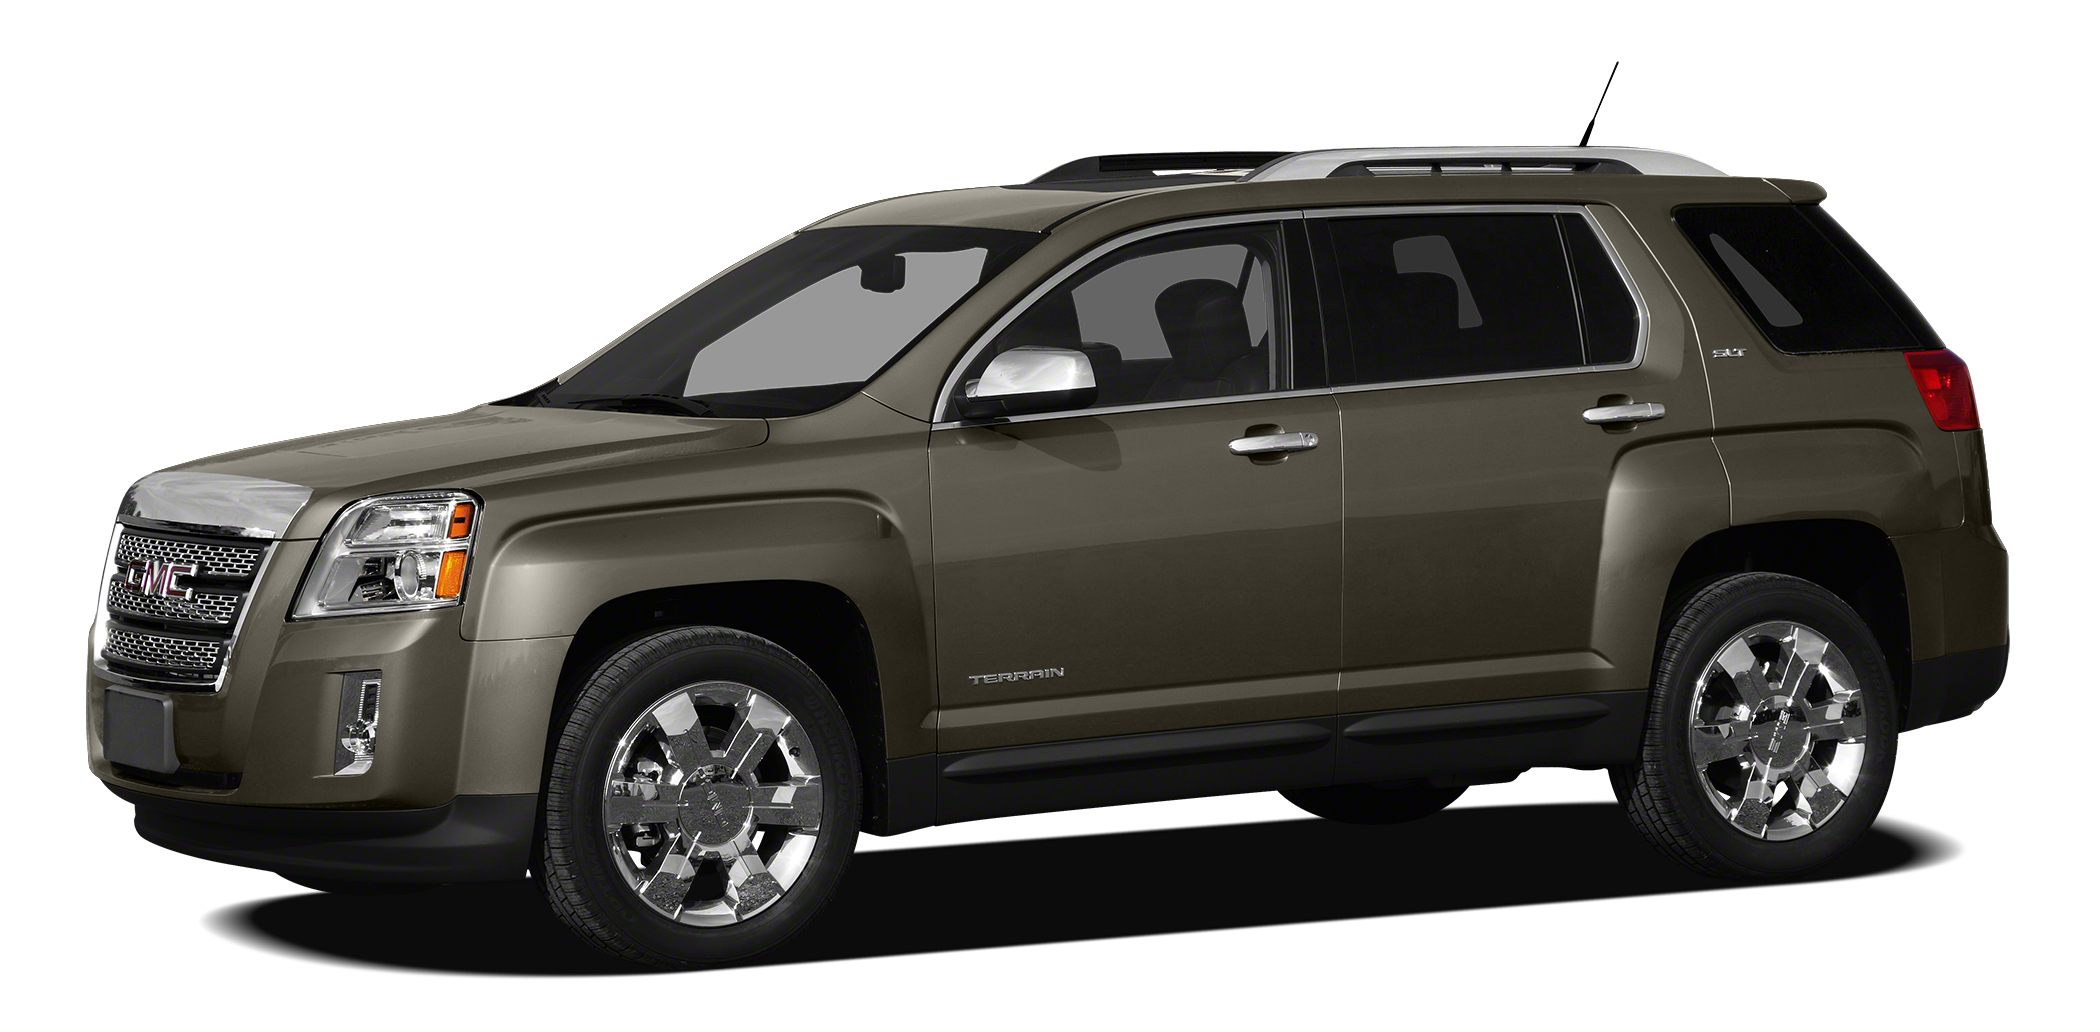 2012 GMC Terrain SLT-1 A ONE OWNER LOCAL TRADE-IN WITH LOW MILES Buy with confidence - local trad